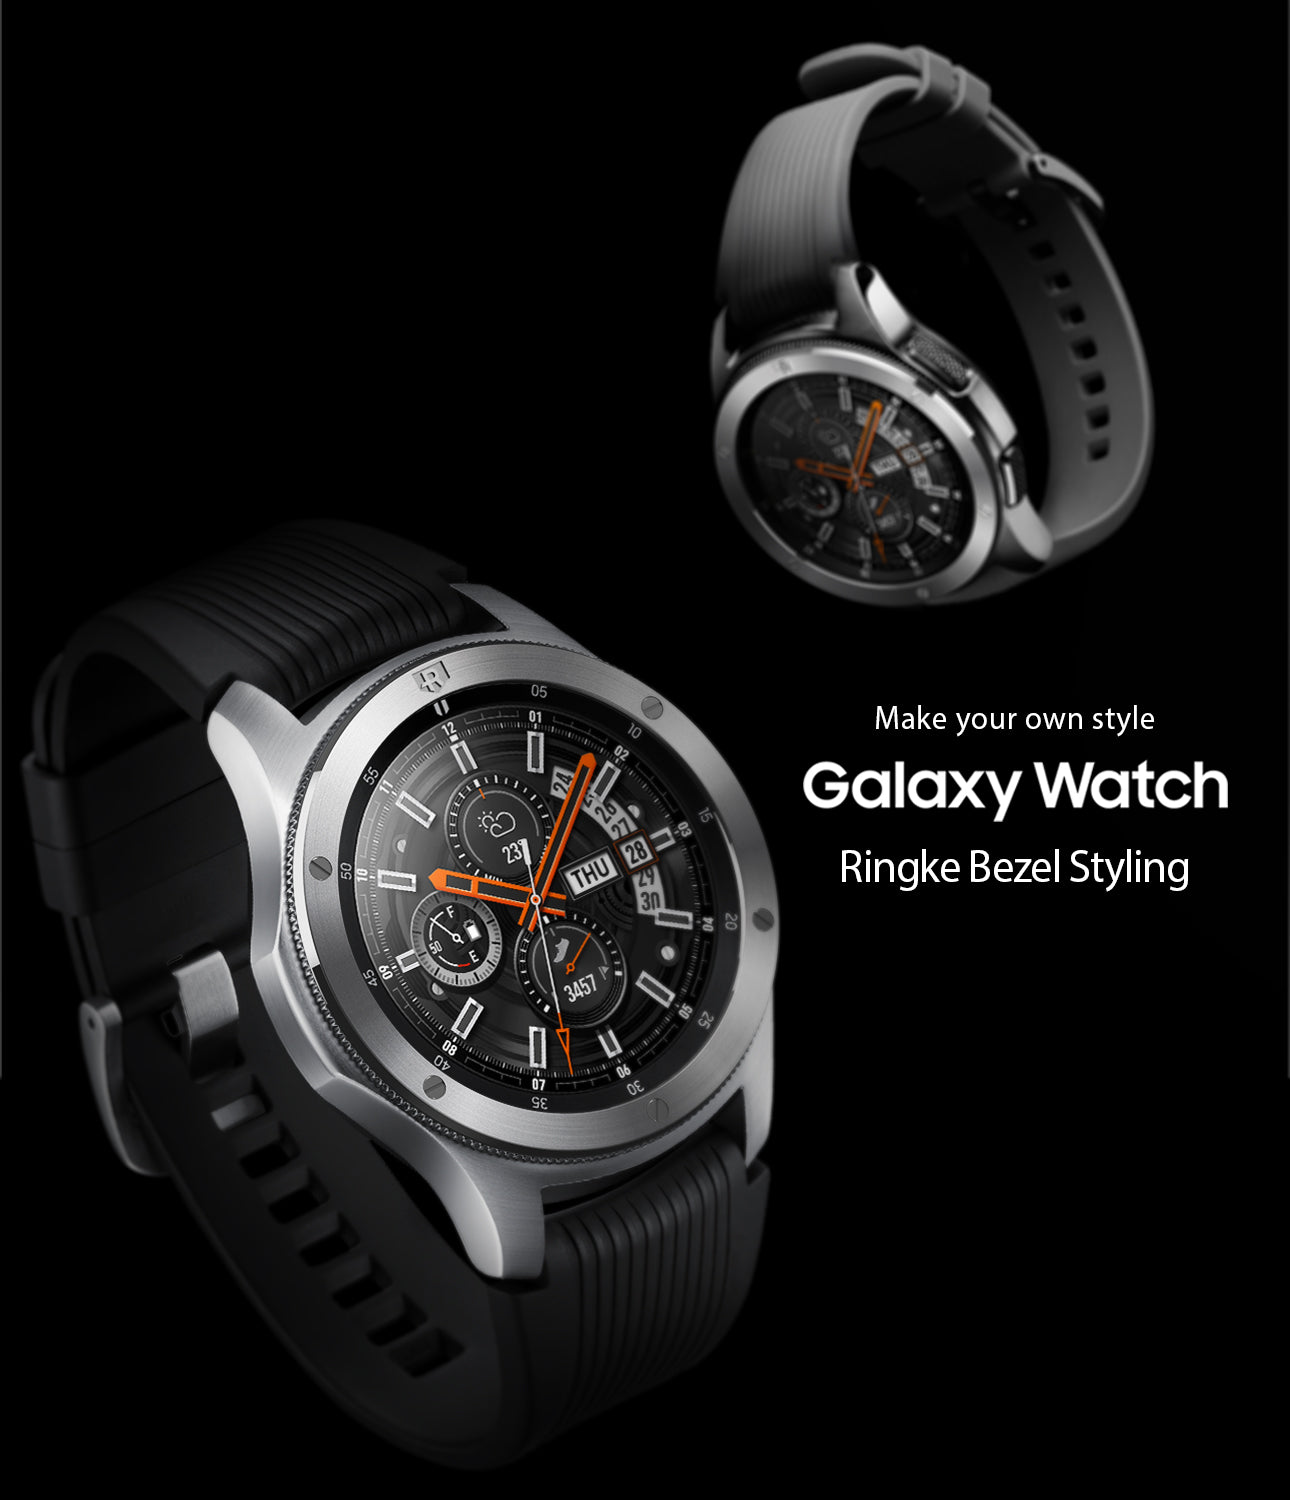 made with high quality stainless steel, ringke bezel styling fits right on the existing bezel of galaxy watch